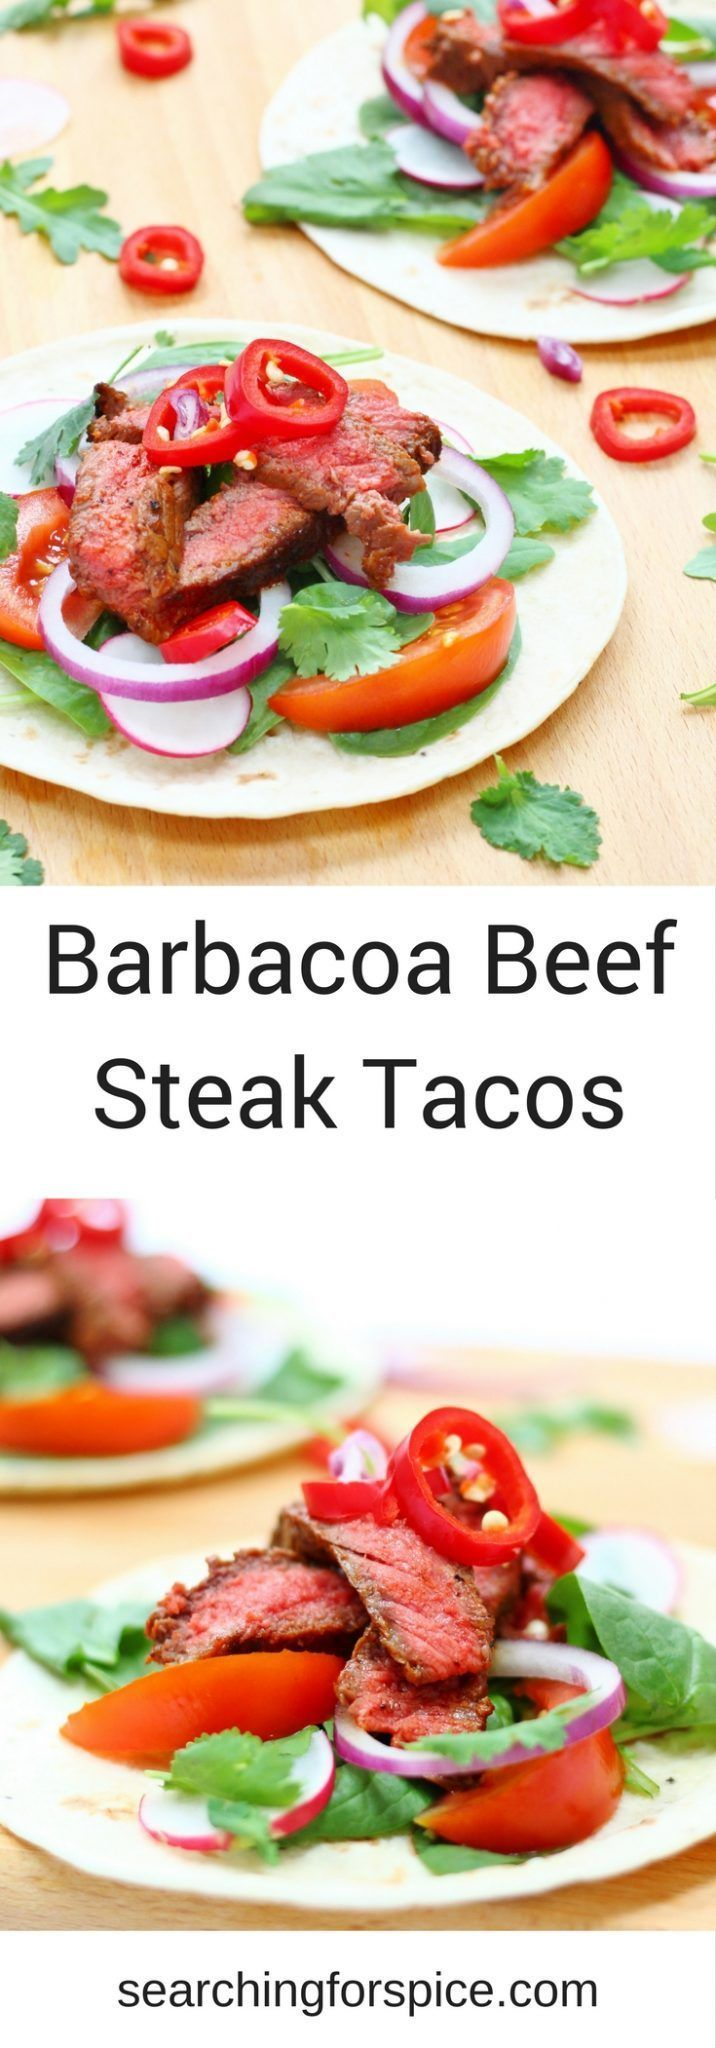 These barbacoa beef steak tacos make a delicious light healthy meal. Cook the steak on the bbq or inside and let everyone help themselves to the taco fillings and toppings. They make a tasty easy family meal. #tacos #beef #easymeals #bbq